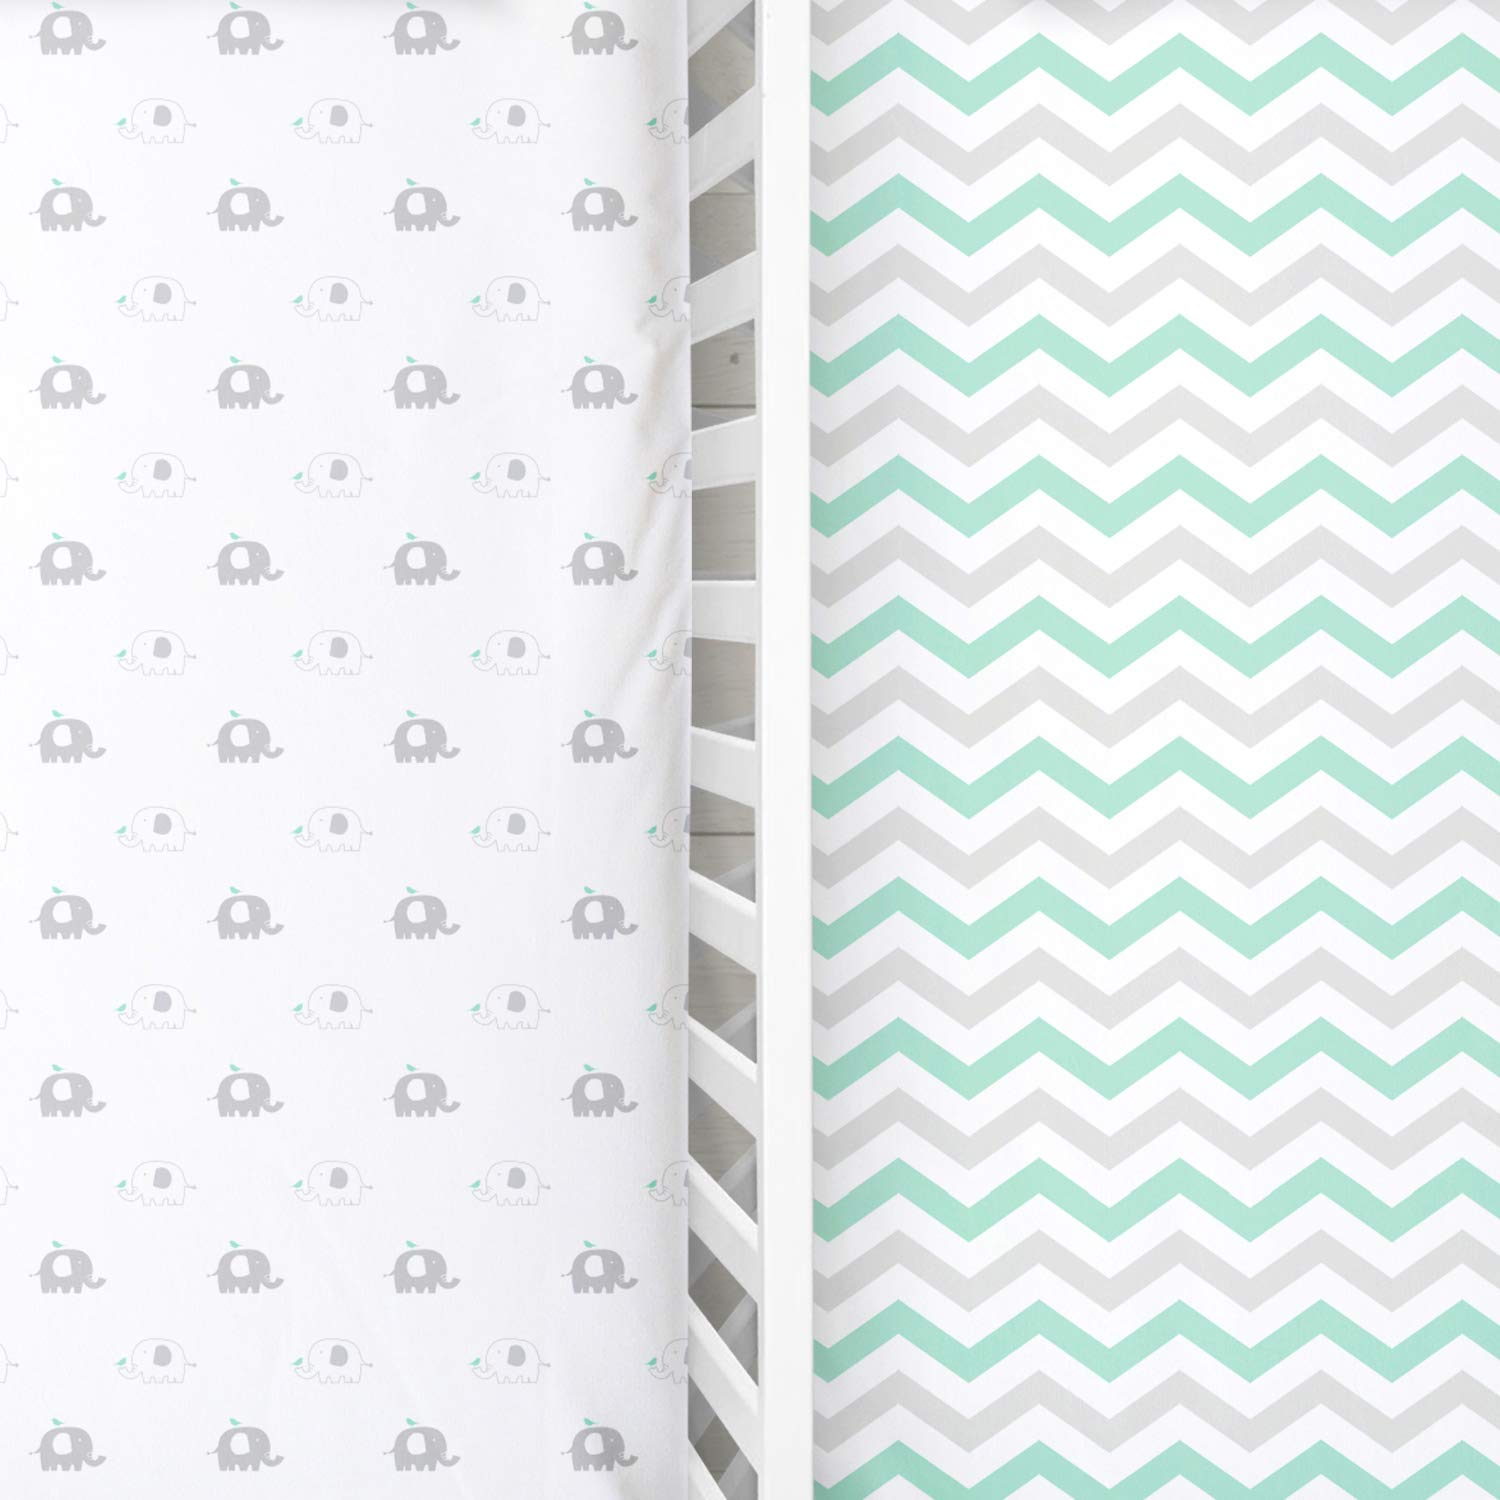 Safari Elephants Grey /& Teal Chevron Stretchy Jersey Cotton Bedding for Standard Mattress 2 Pack Toddler Bed Sheet for Boy or Girl Cuddly Cubs Softest Fitted Crib Sheets Set